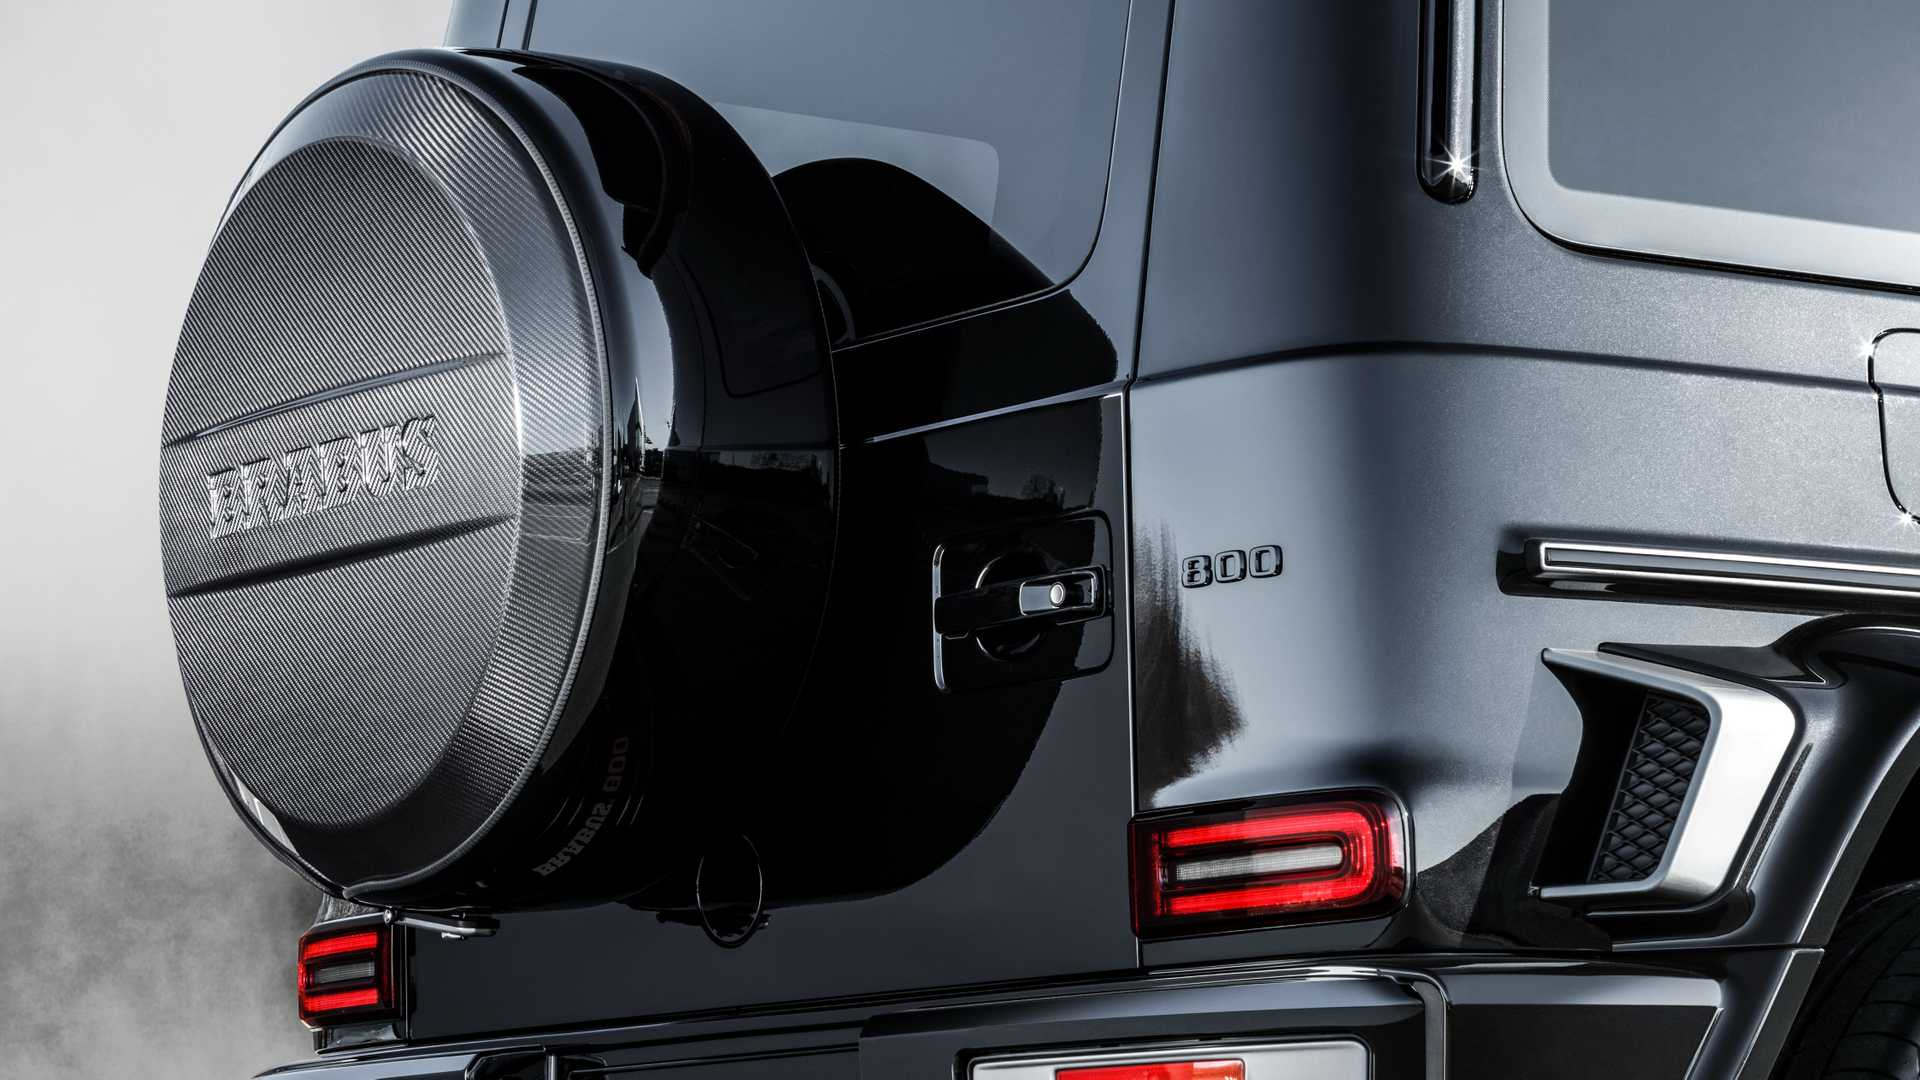 mercedes-amg-g-63-gets-the-brabus-treatment-turns-into-the-800-widestar_16.jpg